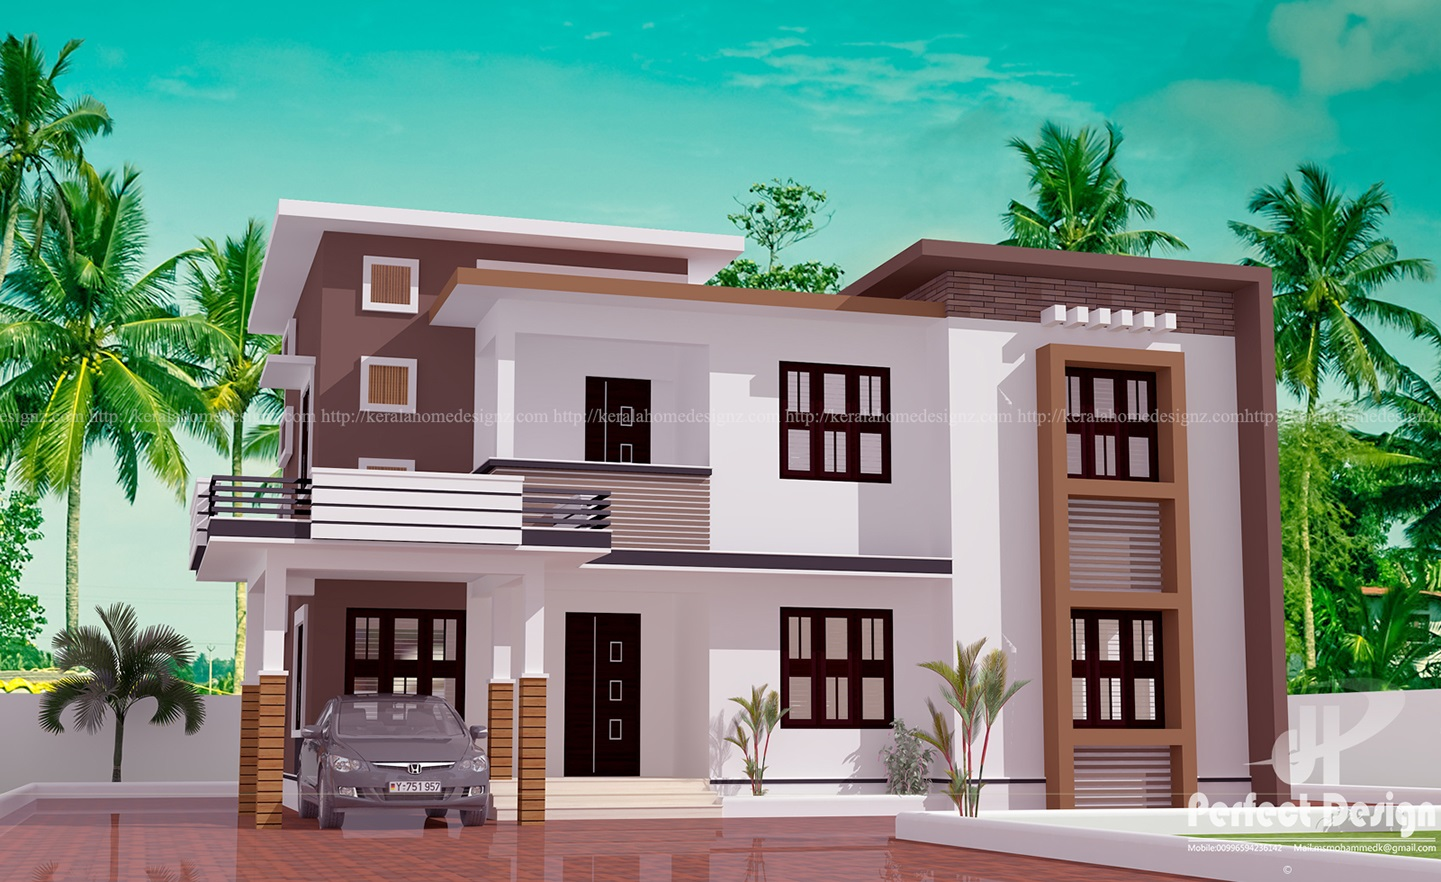 Contemporary 2 story kerala home design kerala home design for Kerala home designs contemporary